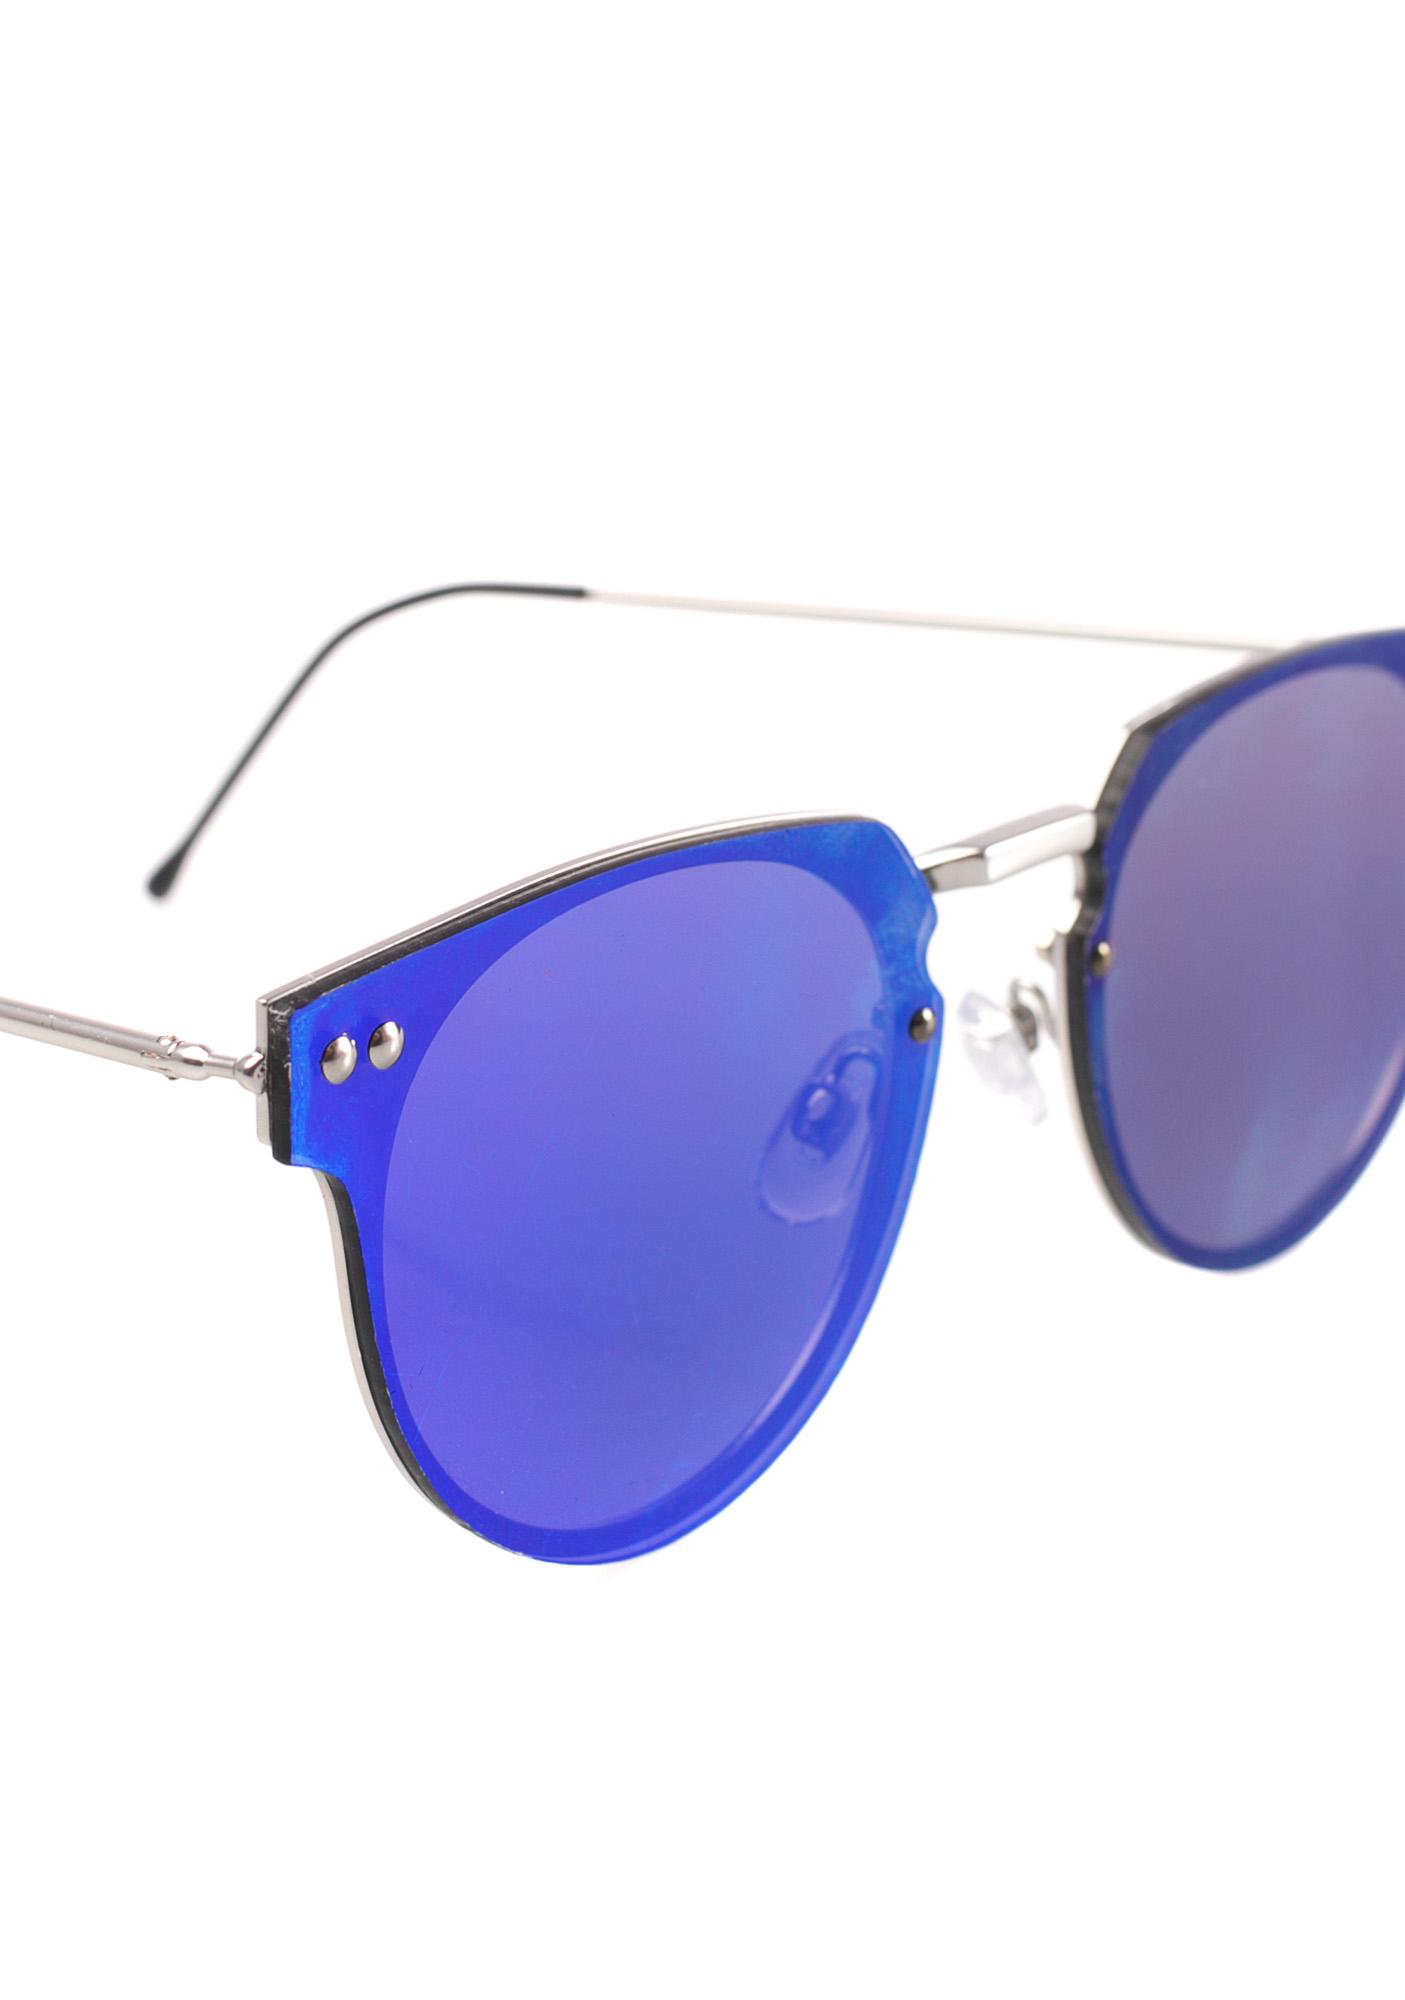 Spitfire Cyber Sunglasses